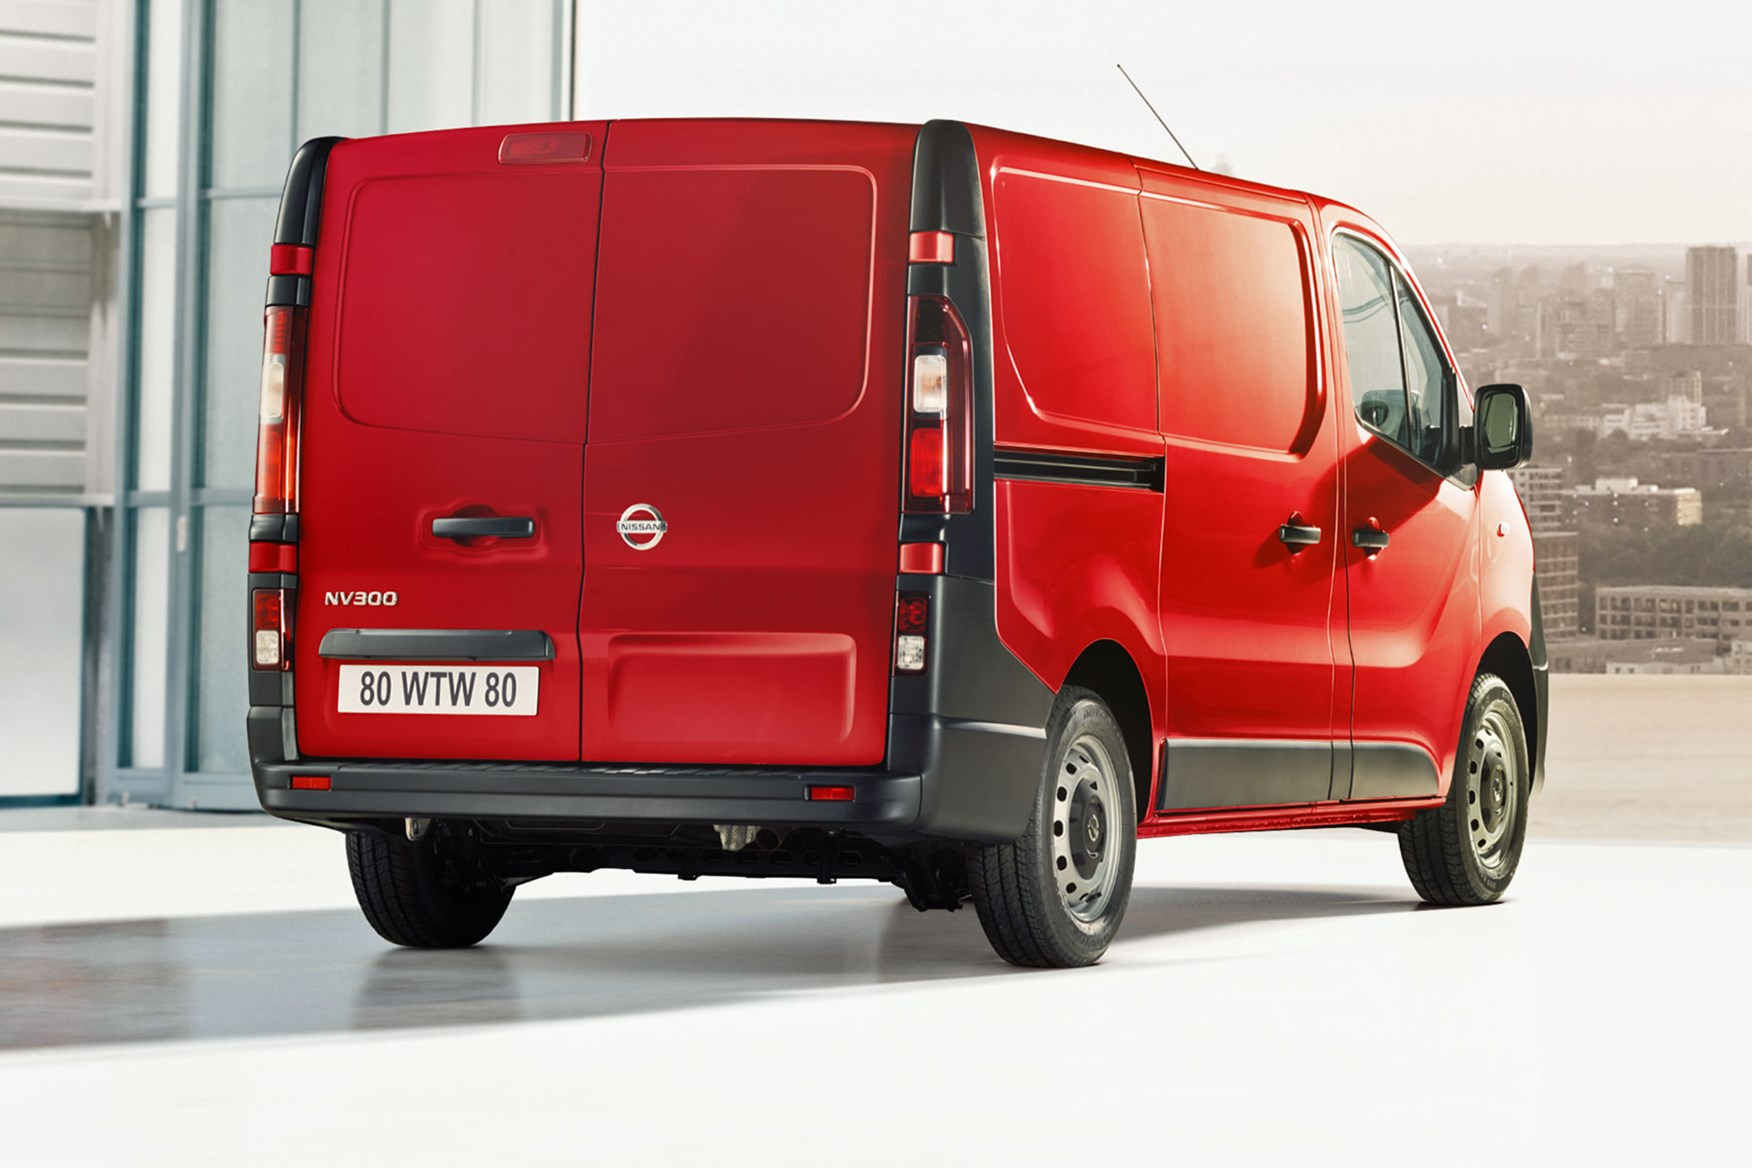 Nissan NV300 - red, rear view, 2019 update model